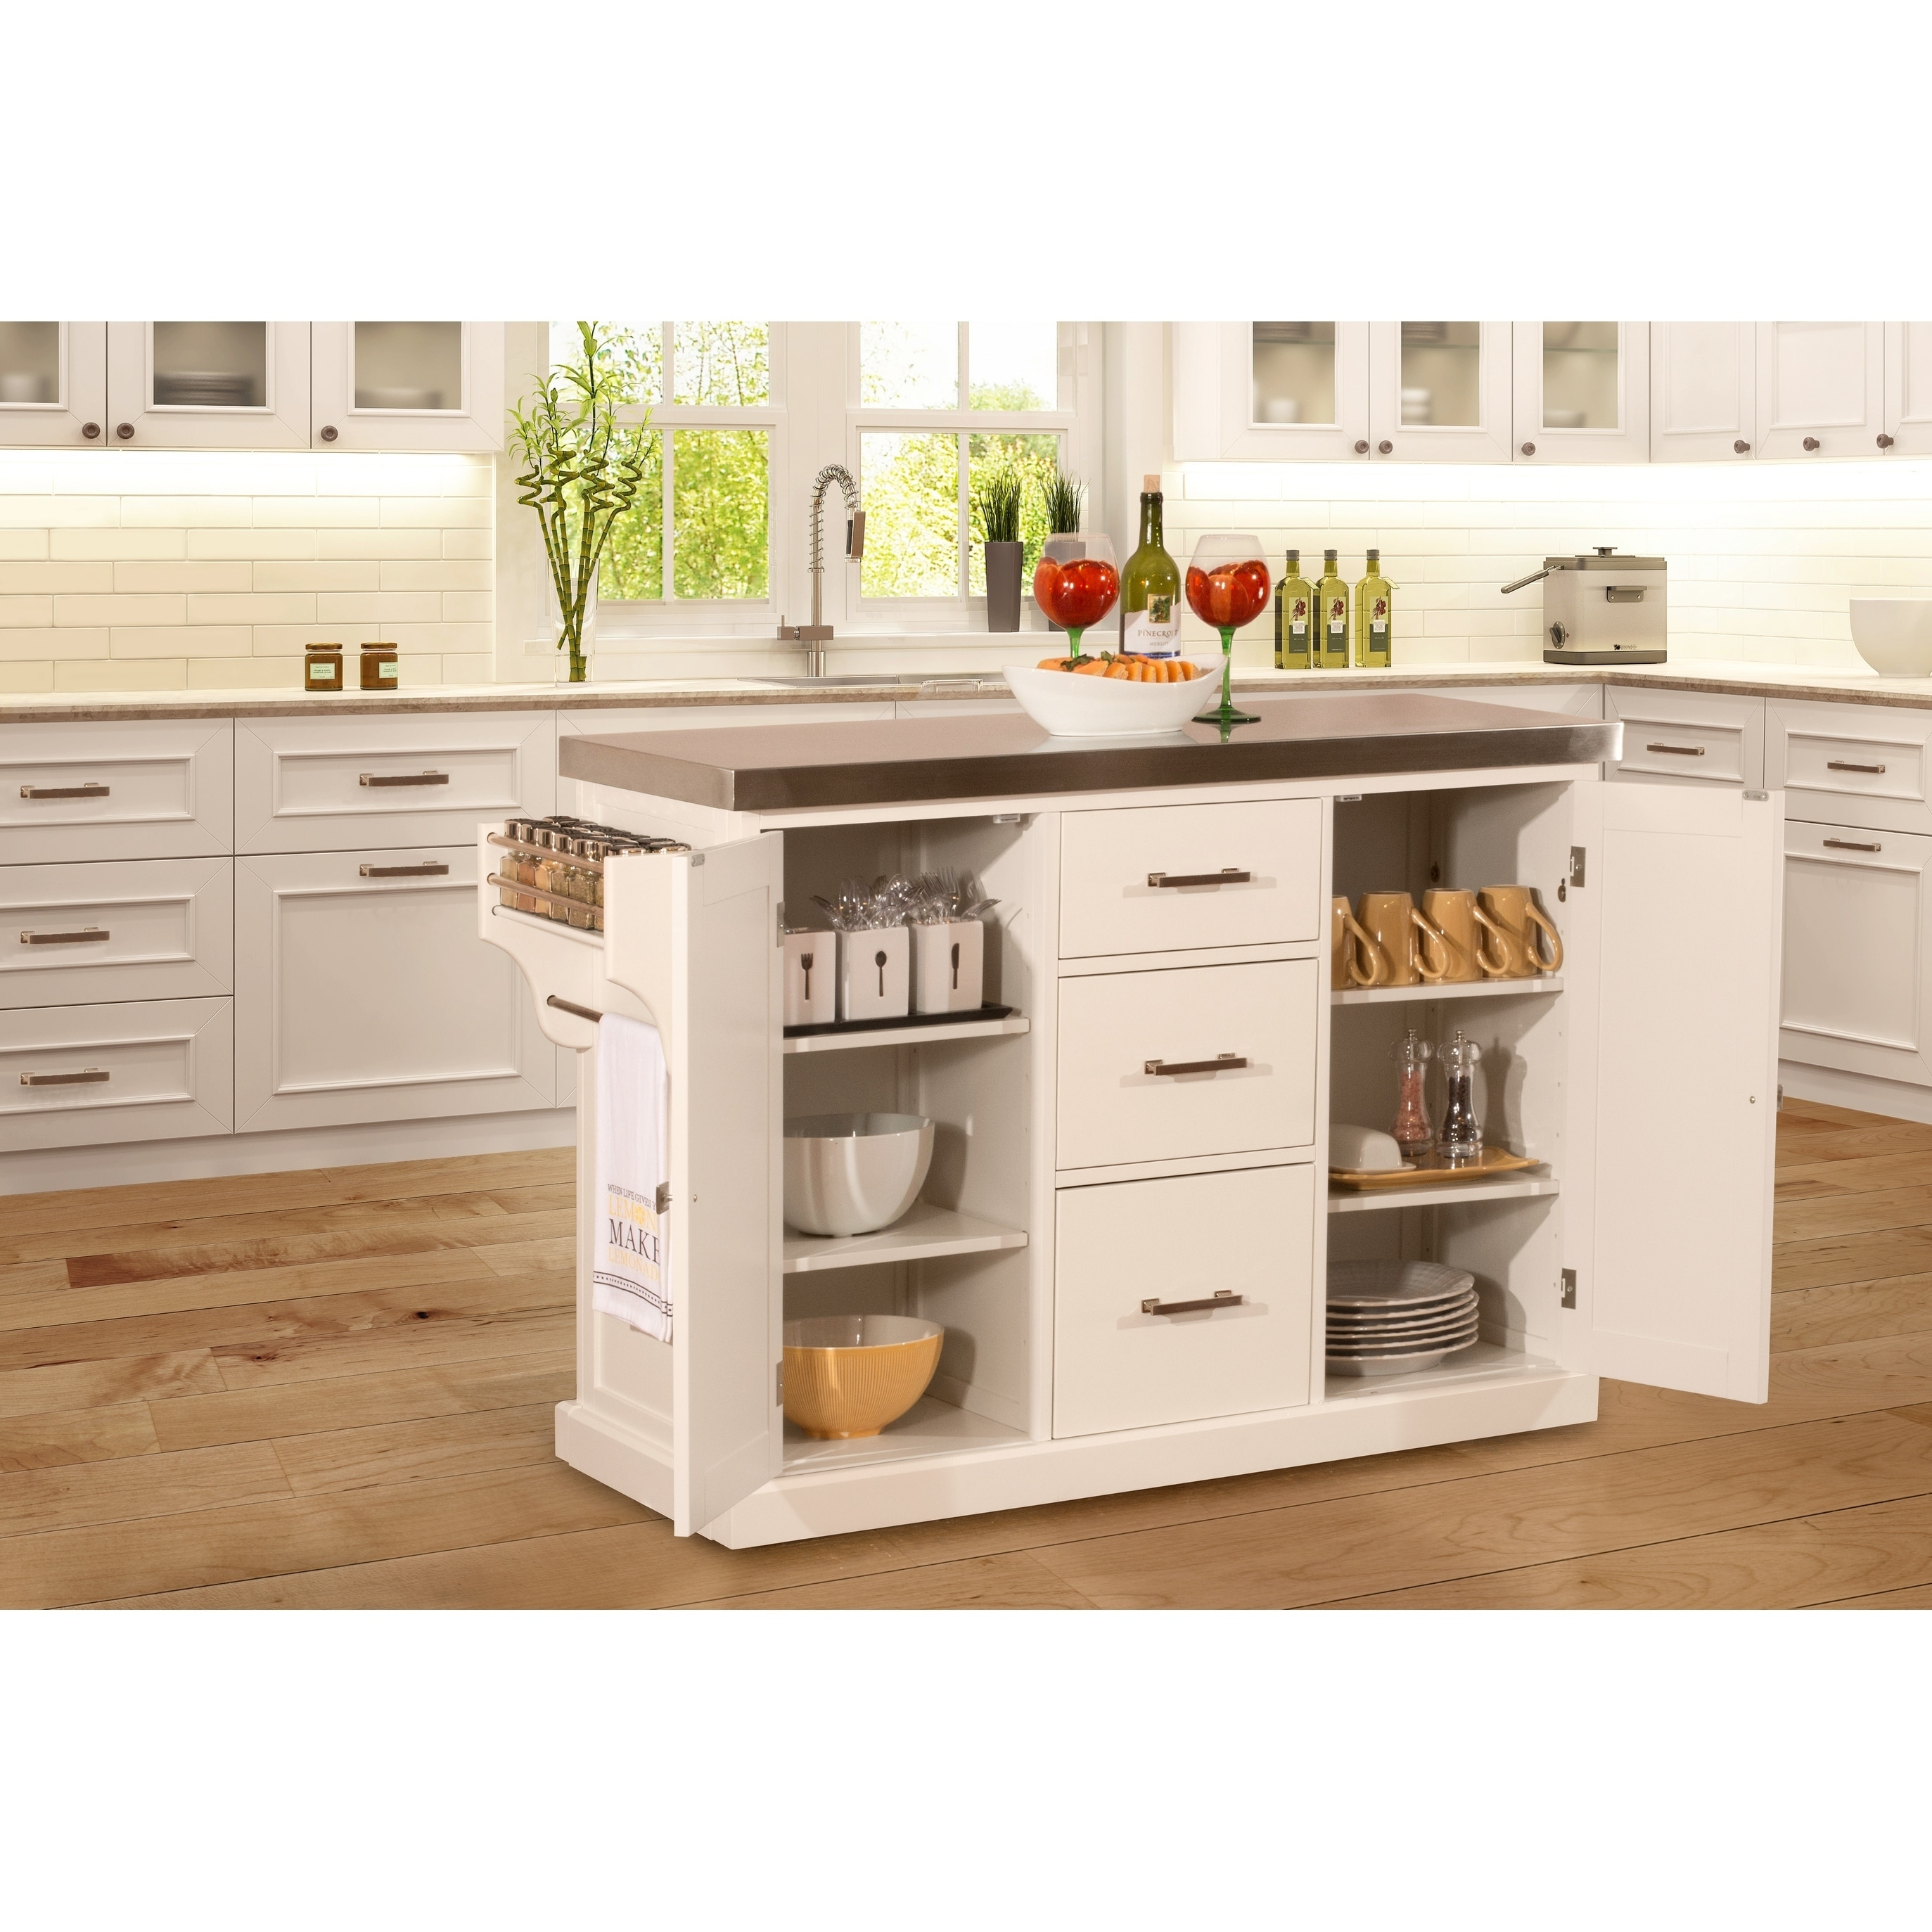 Hillsdale Brigham Kitchen Island in White with Stainless Steel Top ...